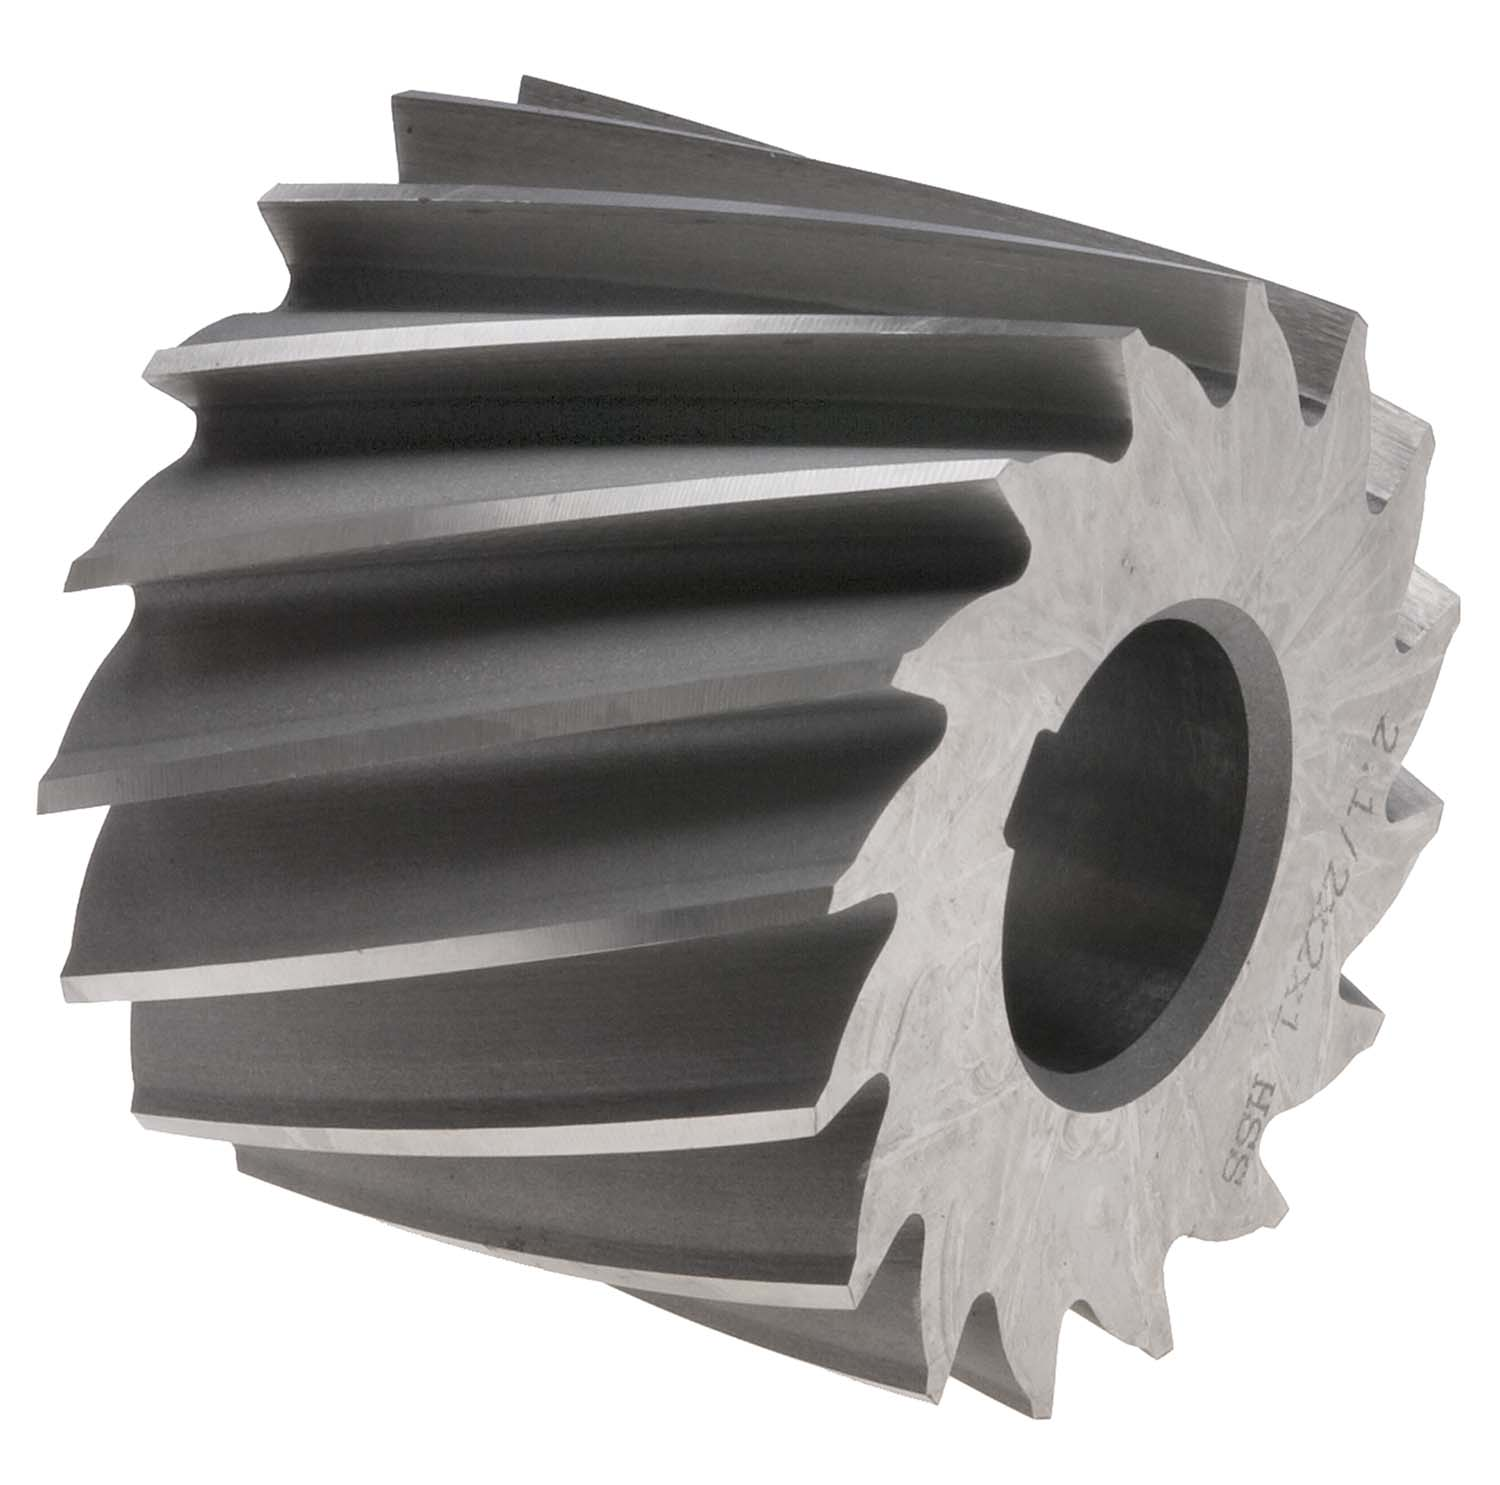 4 X 5/8 X 1-1/4 High Speed Steel Plain Mill Cutter